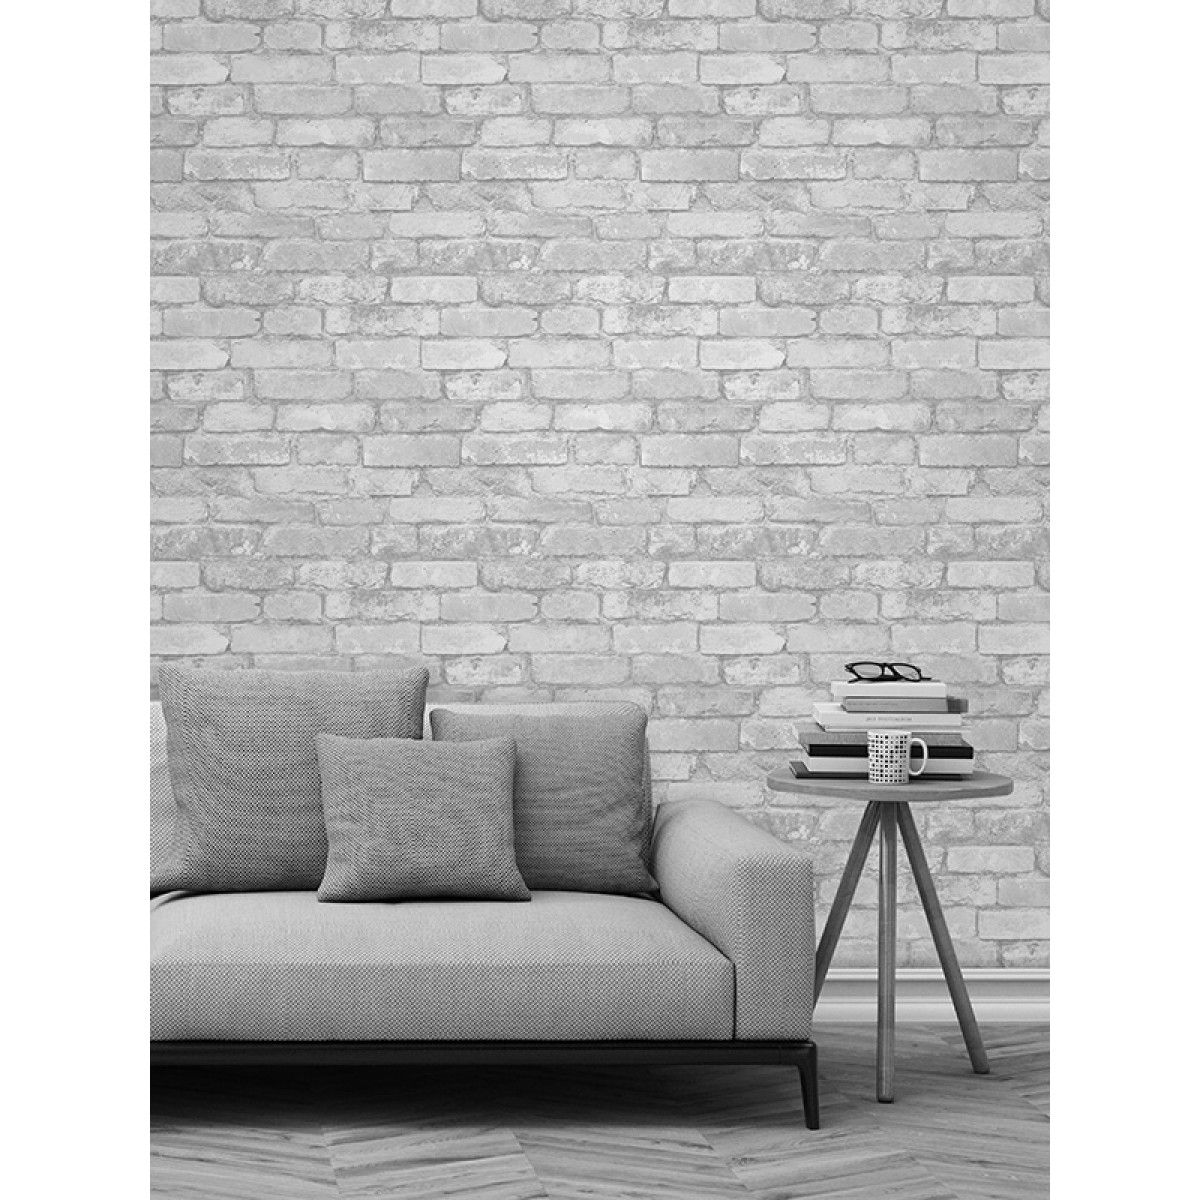 Realistic Rustic White Brick Design Wallpaper Metallic Silver Mica Highlights 10m 328 Ft Long